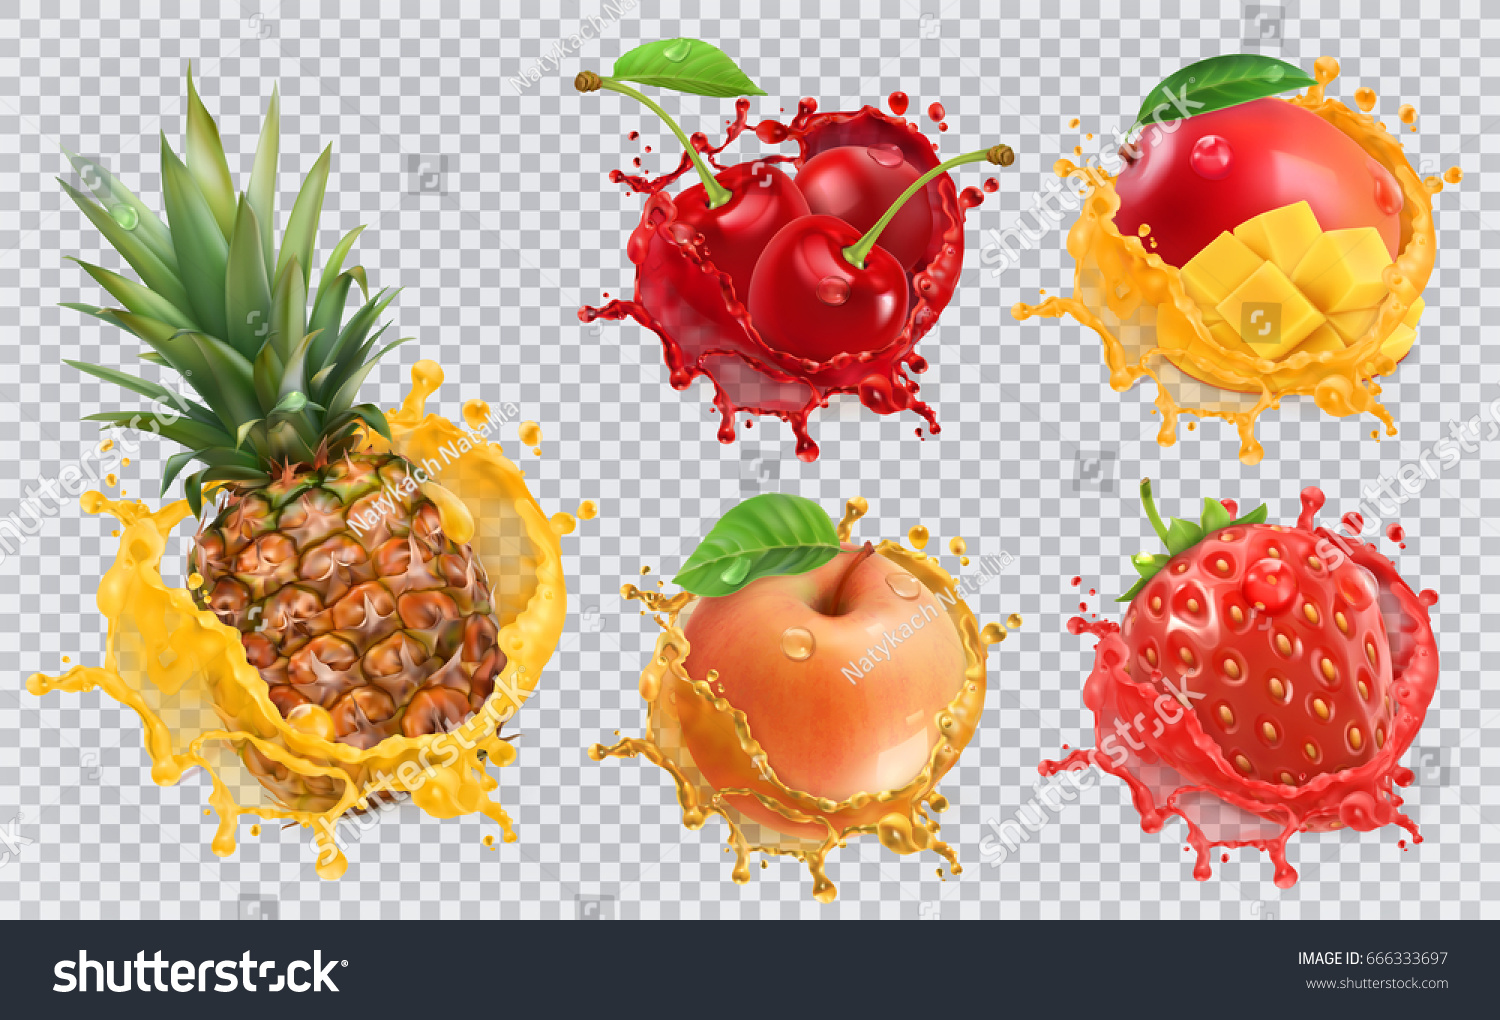 Pineapple, strawberry, apple, cherry, mango juice. Fresh fruits and splashes, 3d vector icon set #666333697